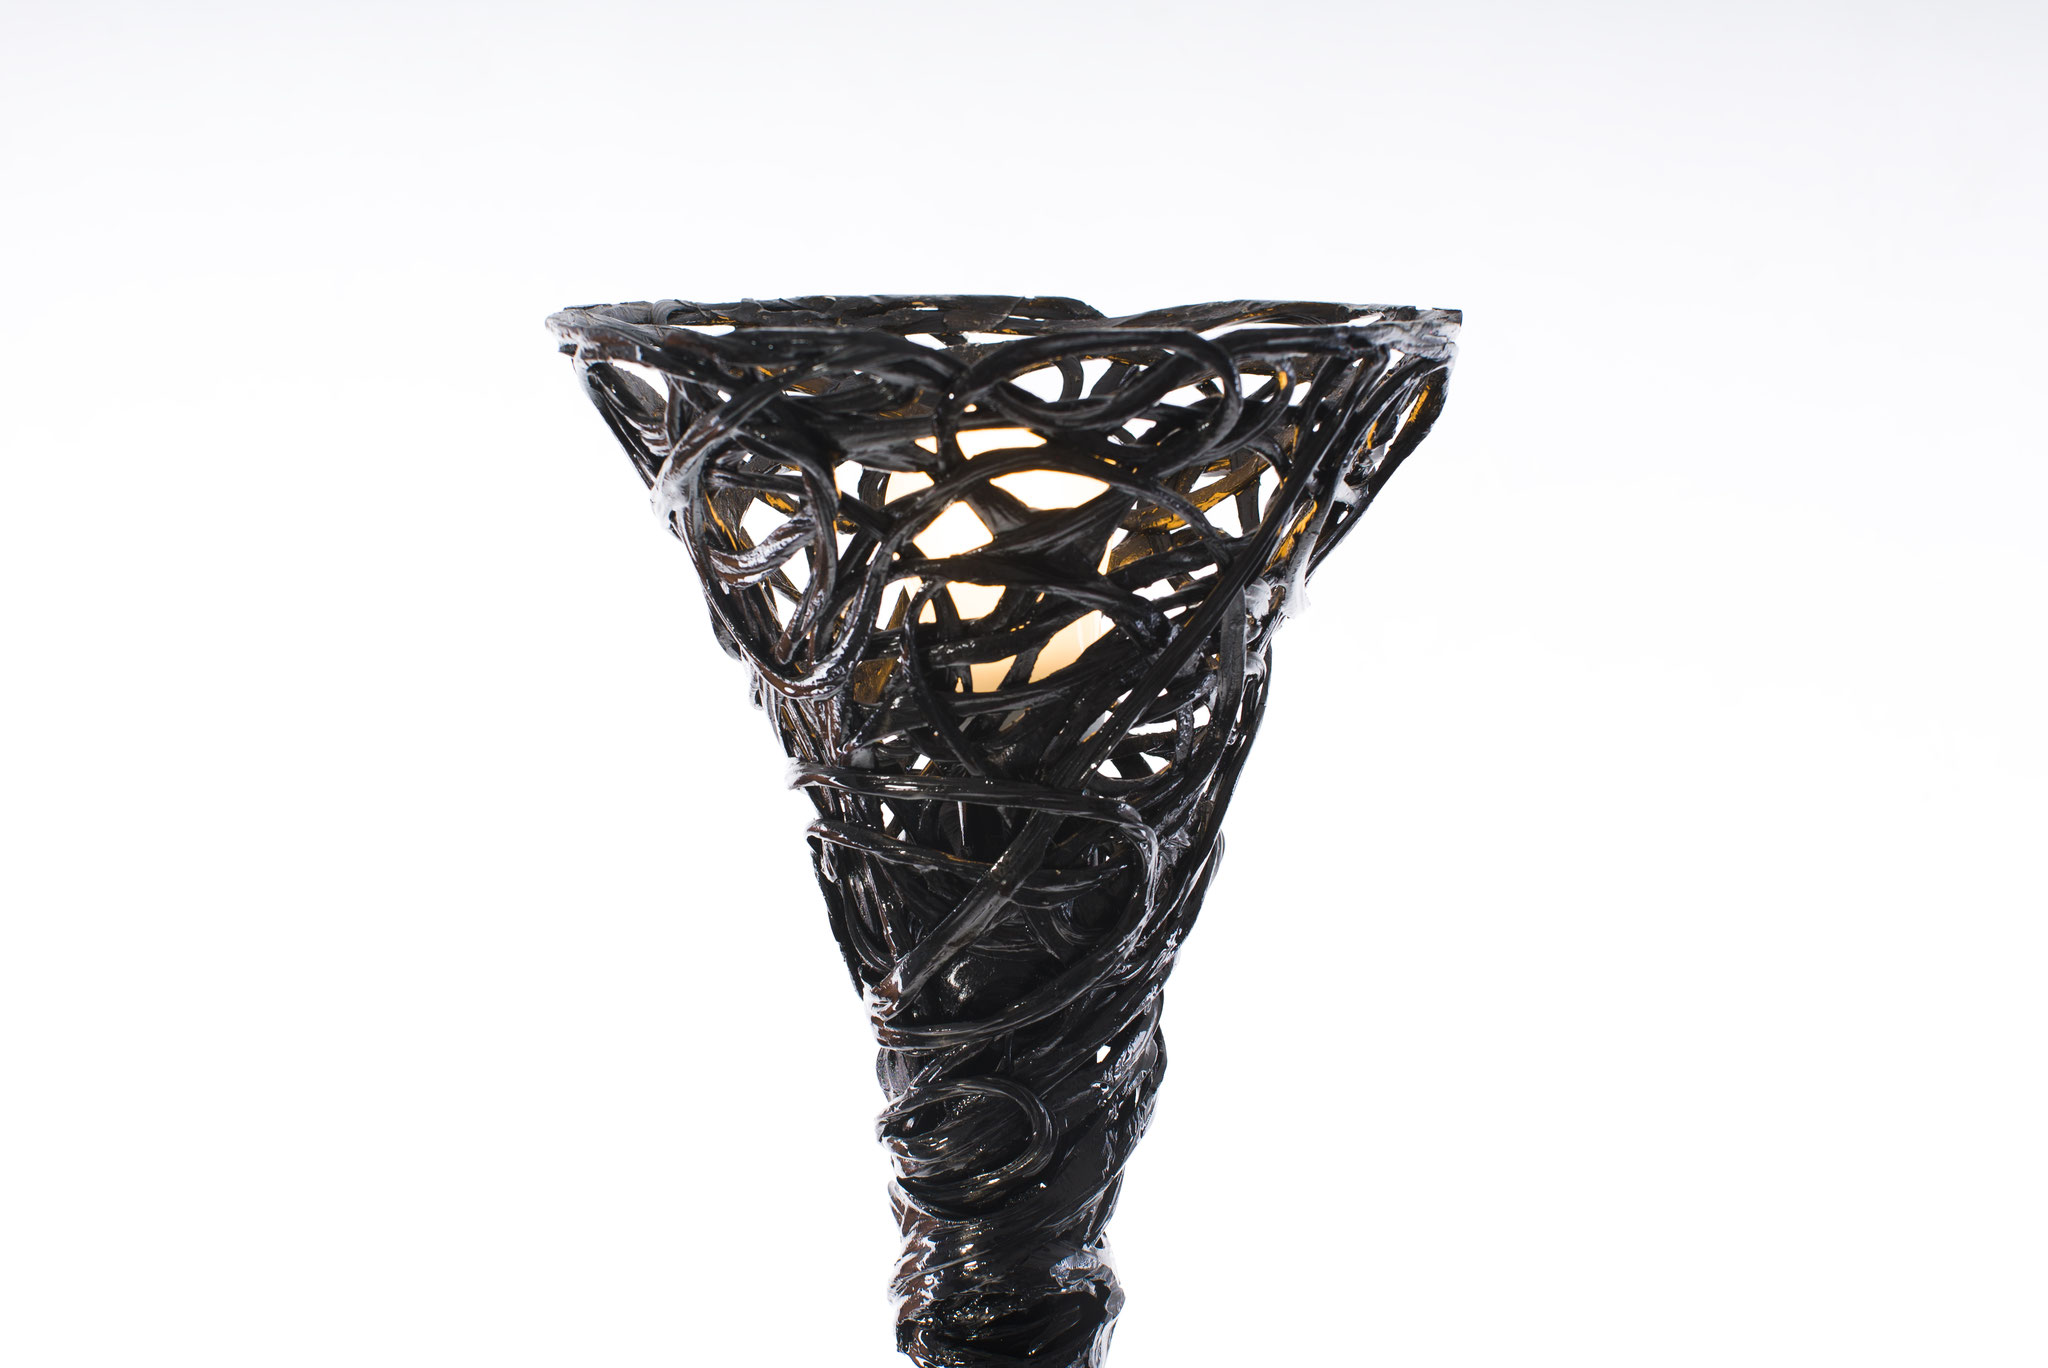 Constructive expressionism floor lamp, made out of carbon fiber and epoxy resin, H: 240cm, W: 30cm, L: 30cm